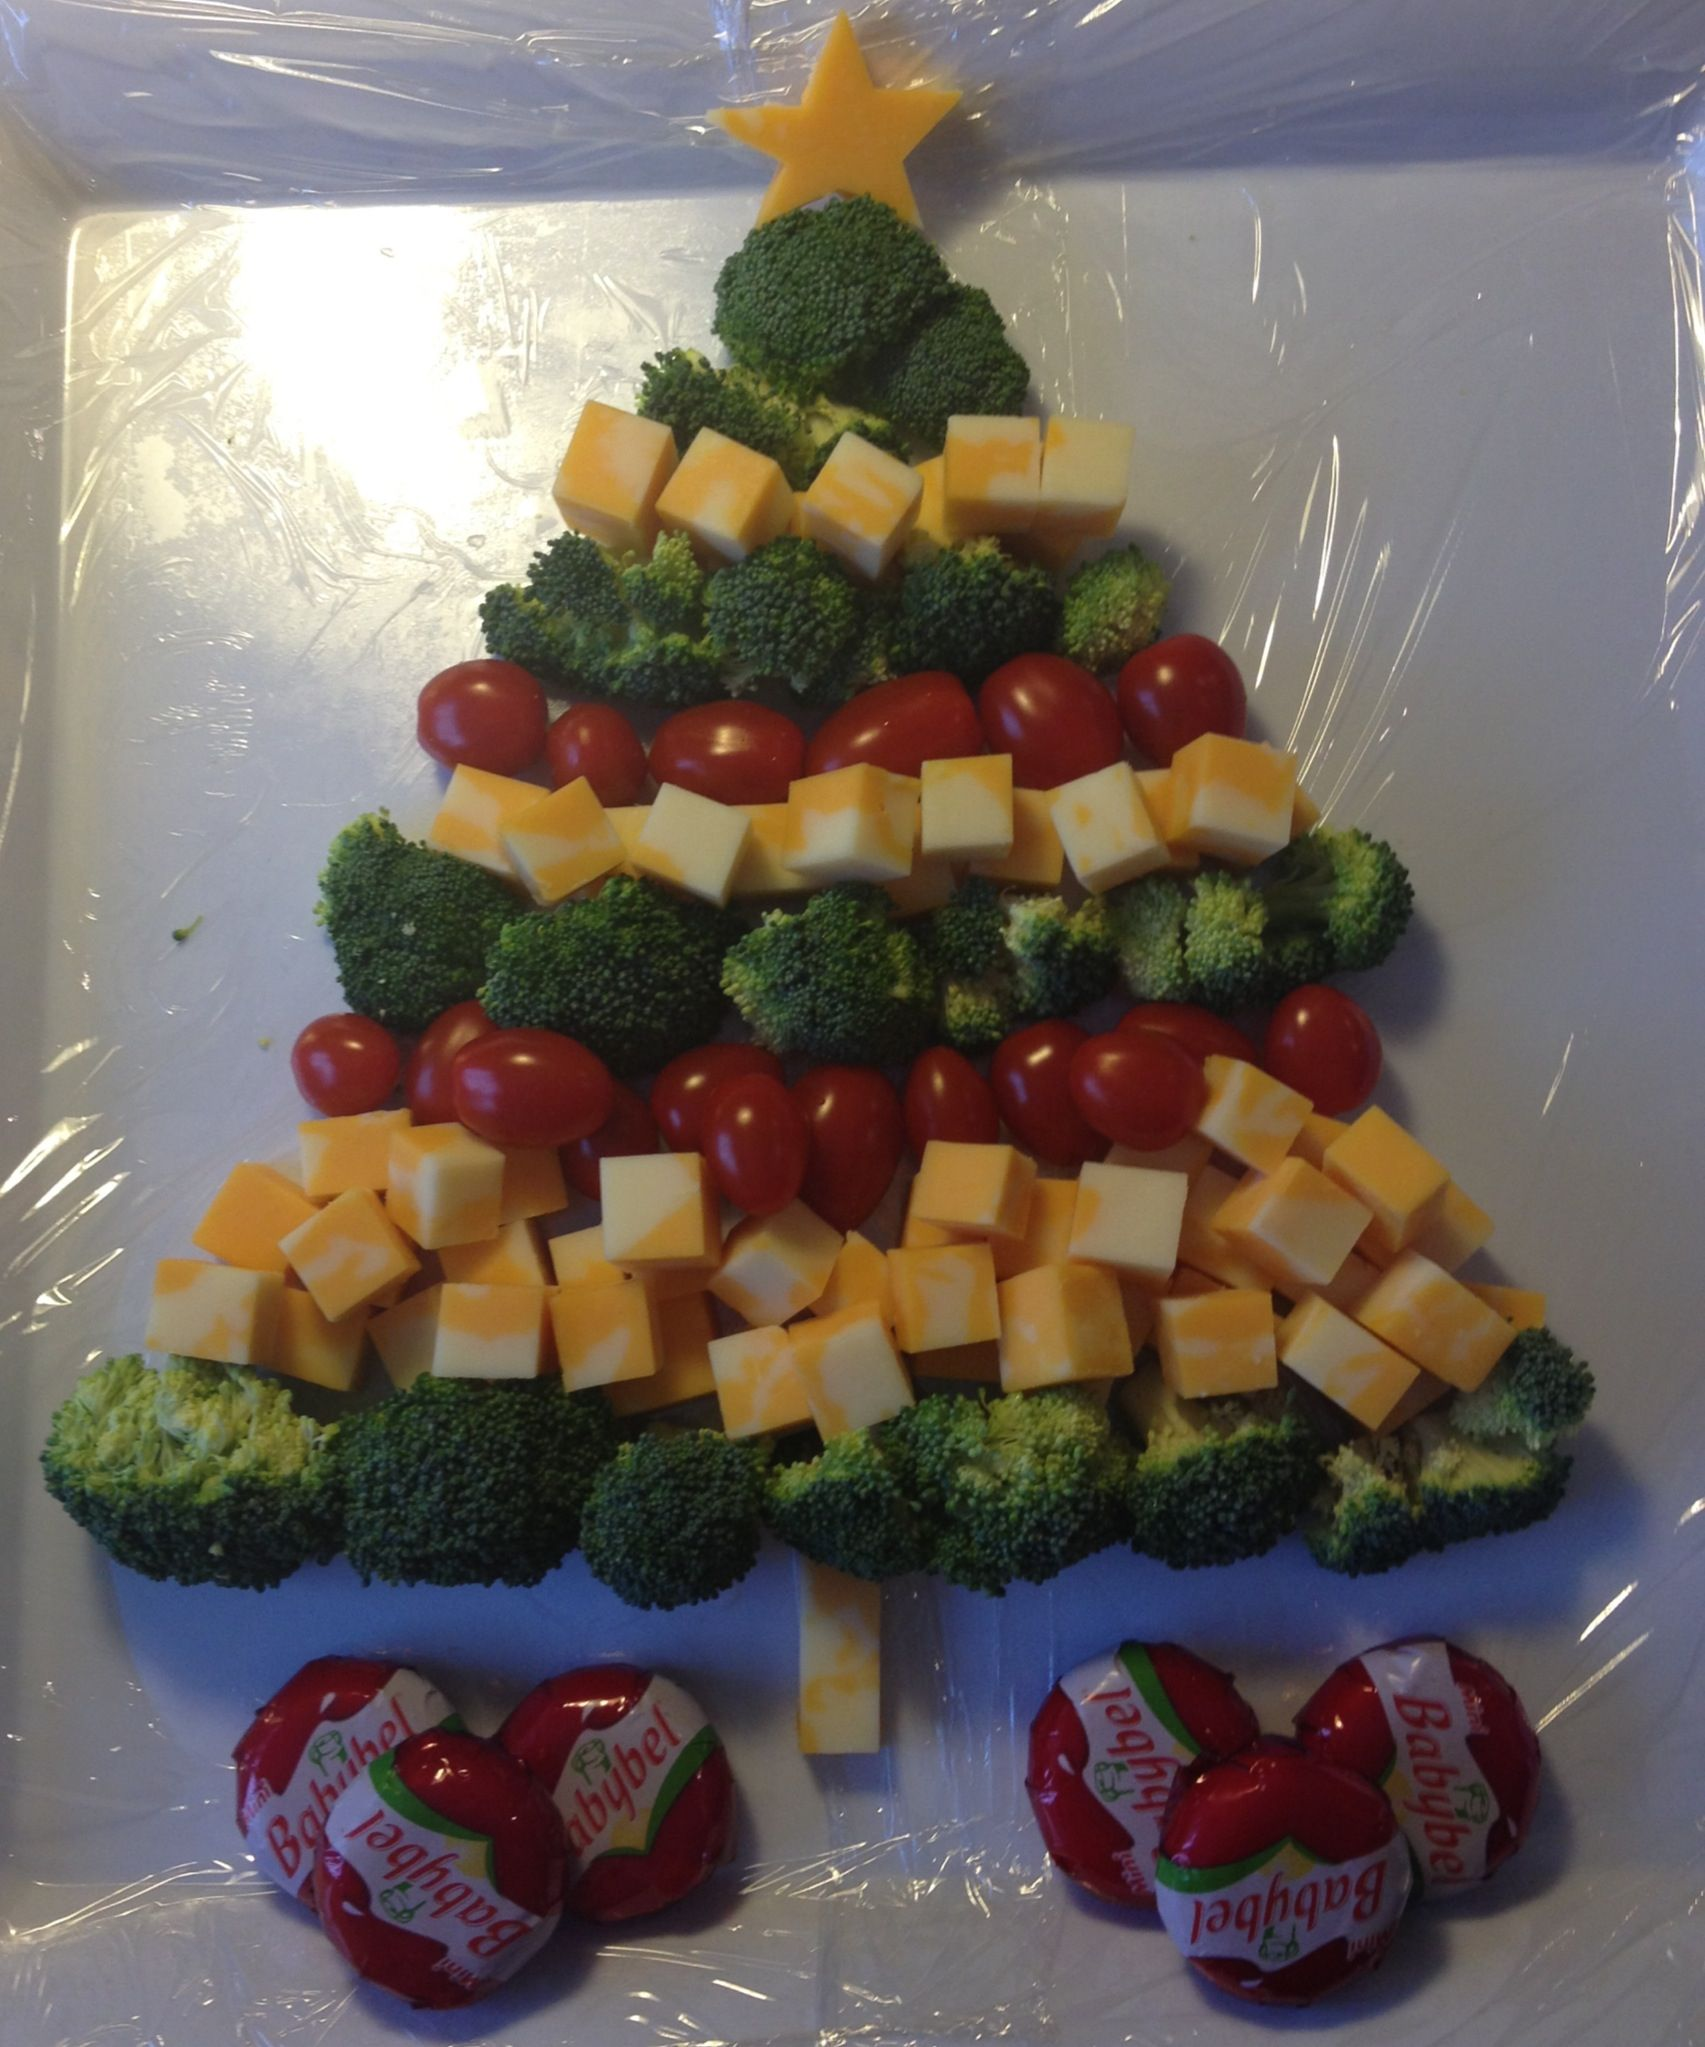 Christmas tree cheese platter with broccoli and cherry tomatoes. Perfect for Christmas party!